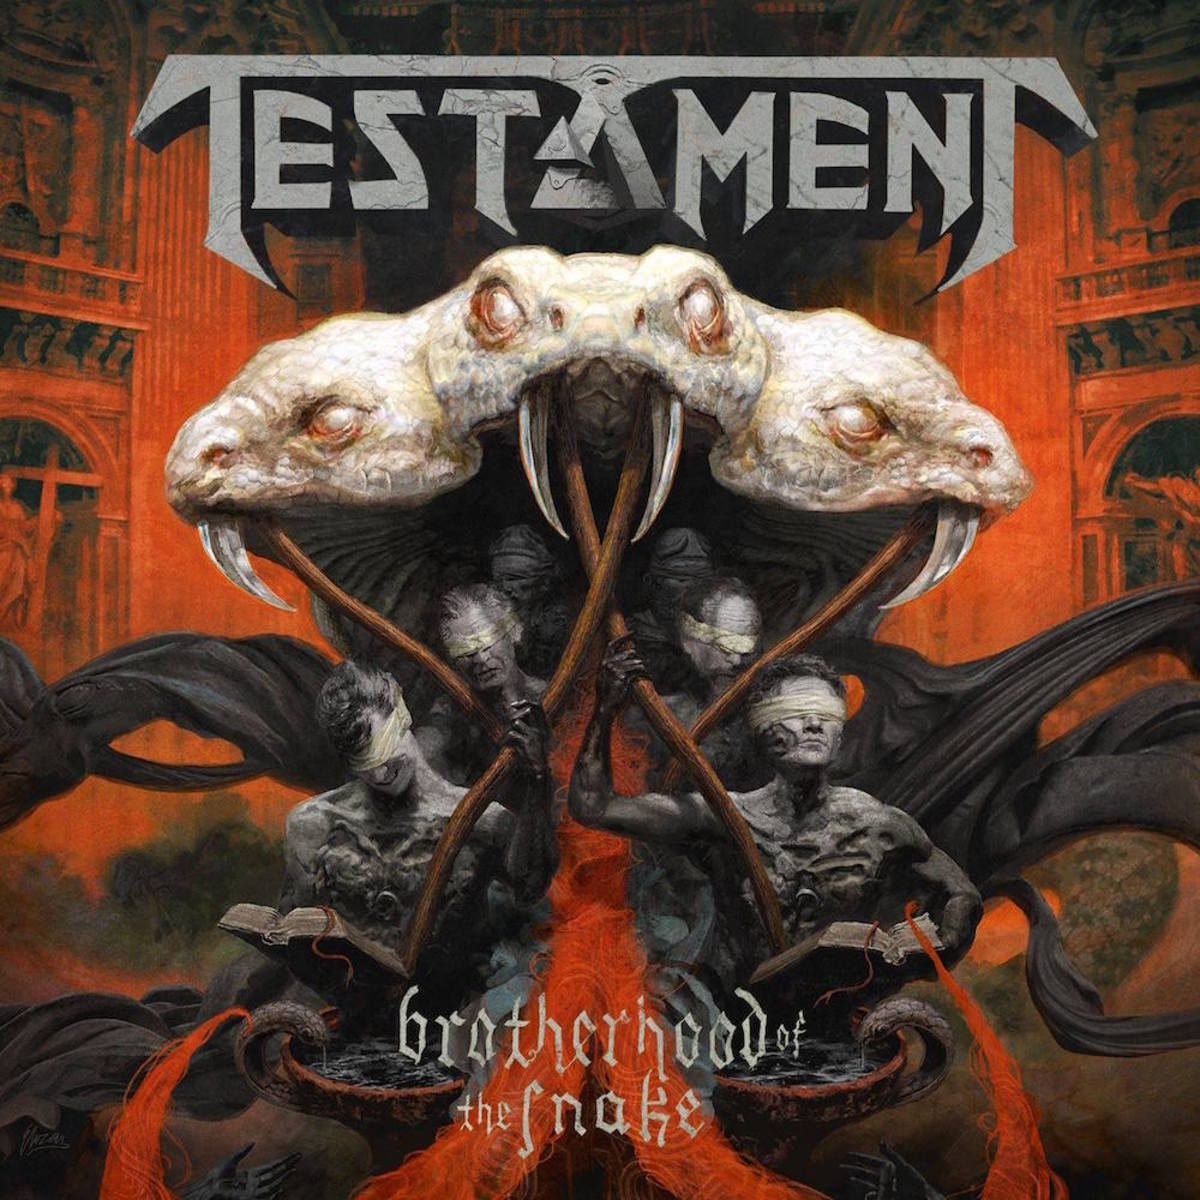 A Review of the Album Brotherhood of the Snake by Testament and the Return of Drummer Gene Hoglan